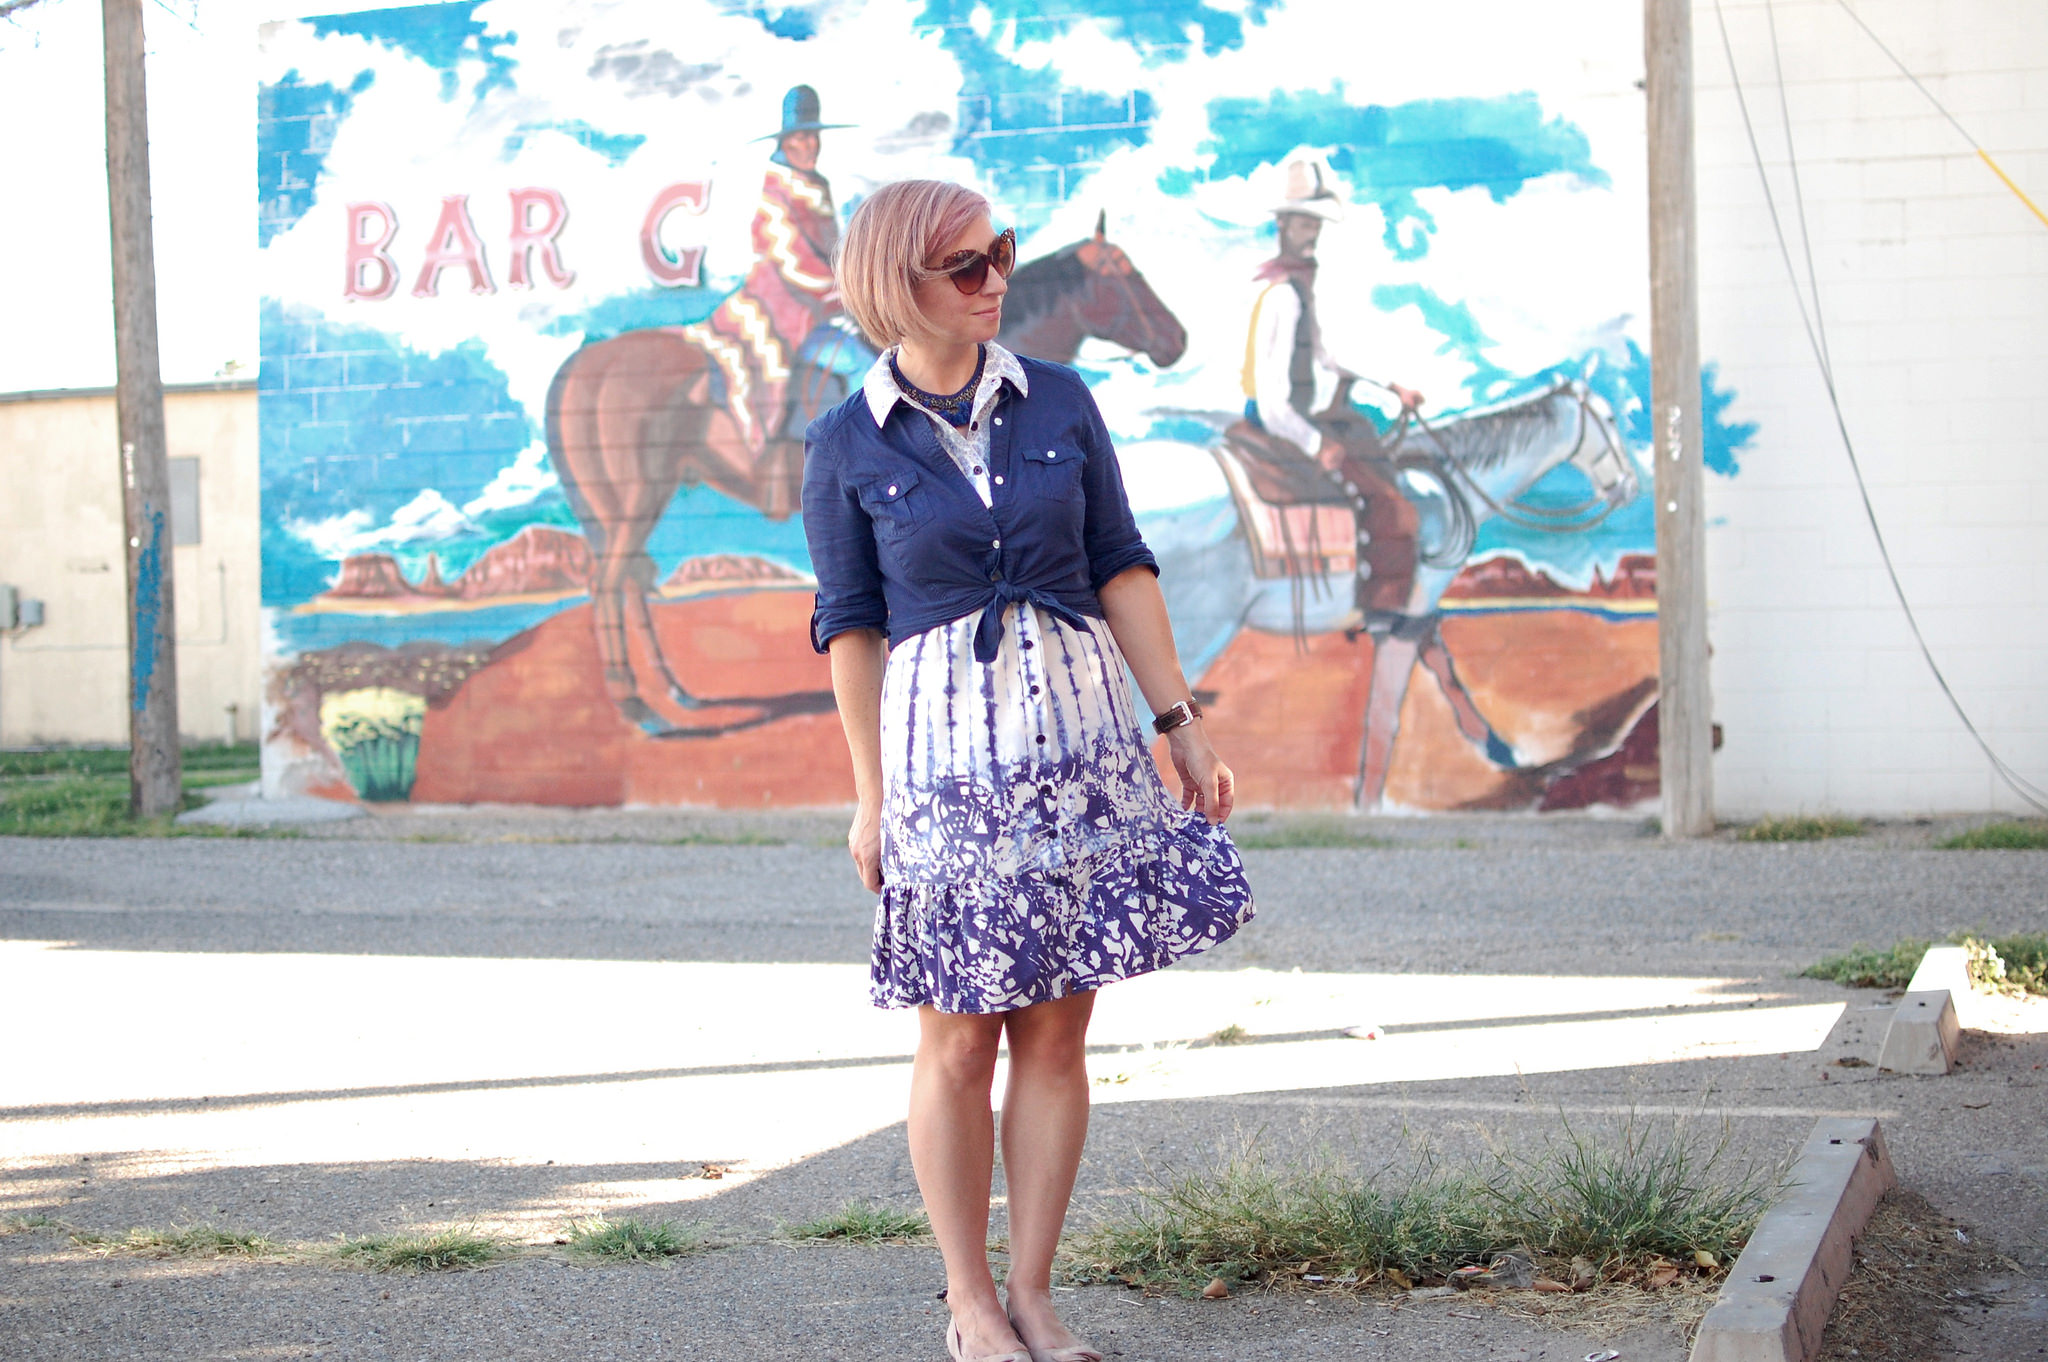 portales mural navy white business casual ootd daily outfit blog whatiwore2day